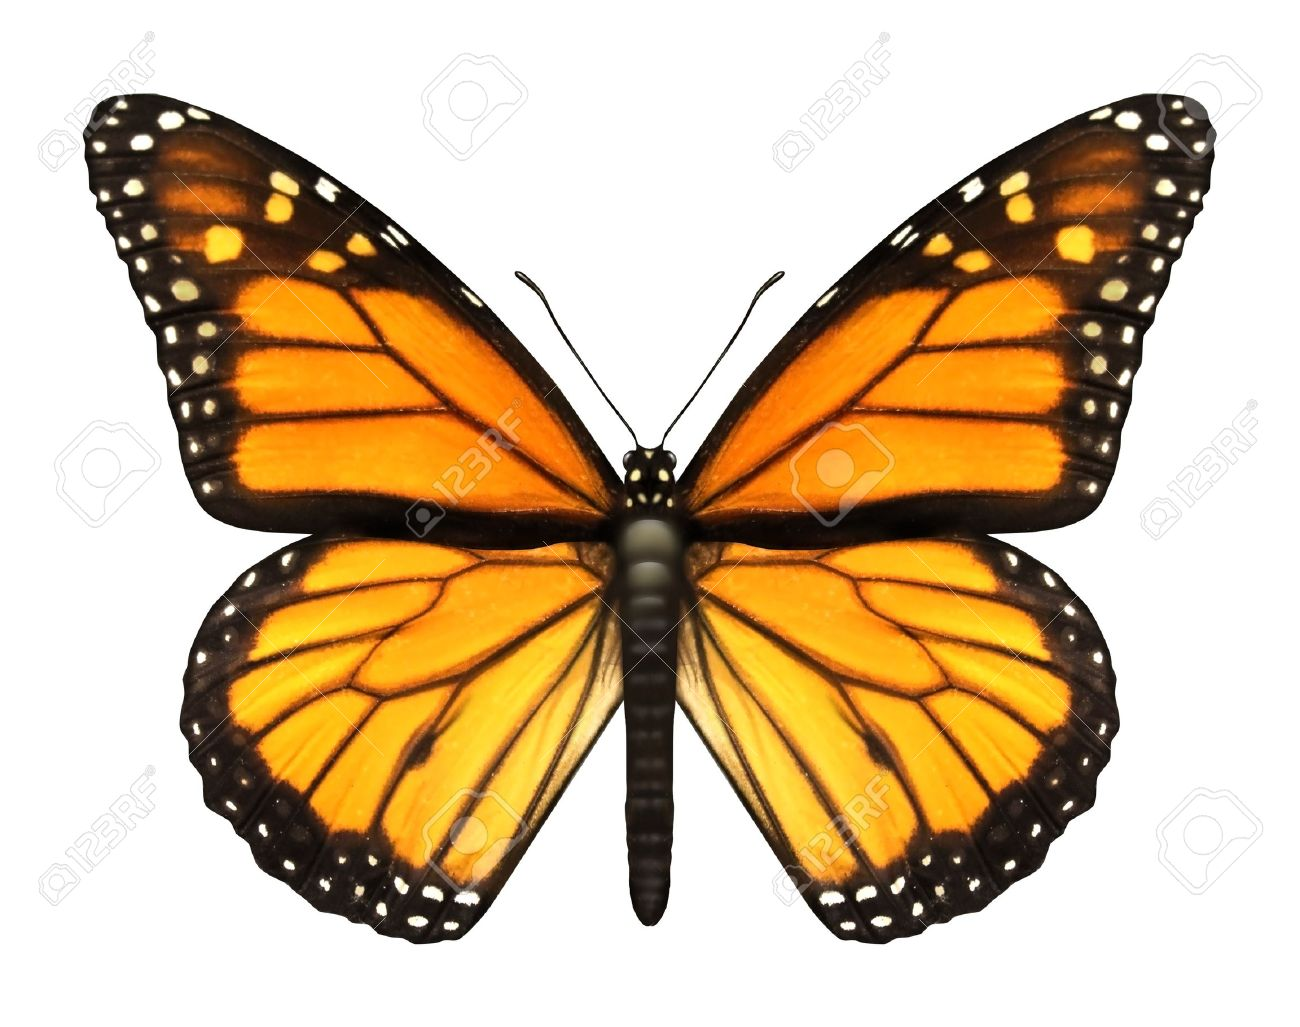 Monarch Butterfly with open wings in a top view as a flying migratory insect butterflies that represents summer and the beauty of nature Stock Photo - 15975773